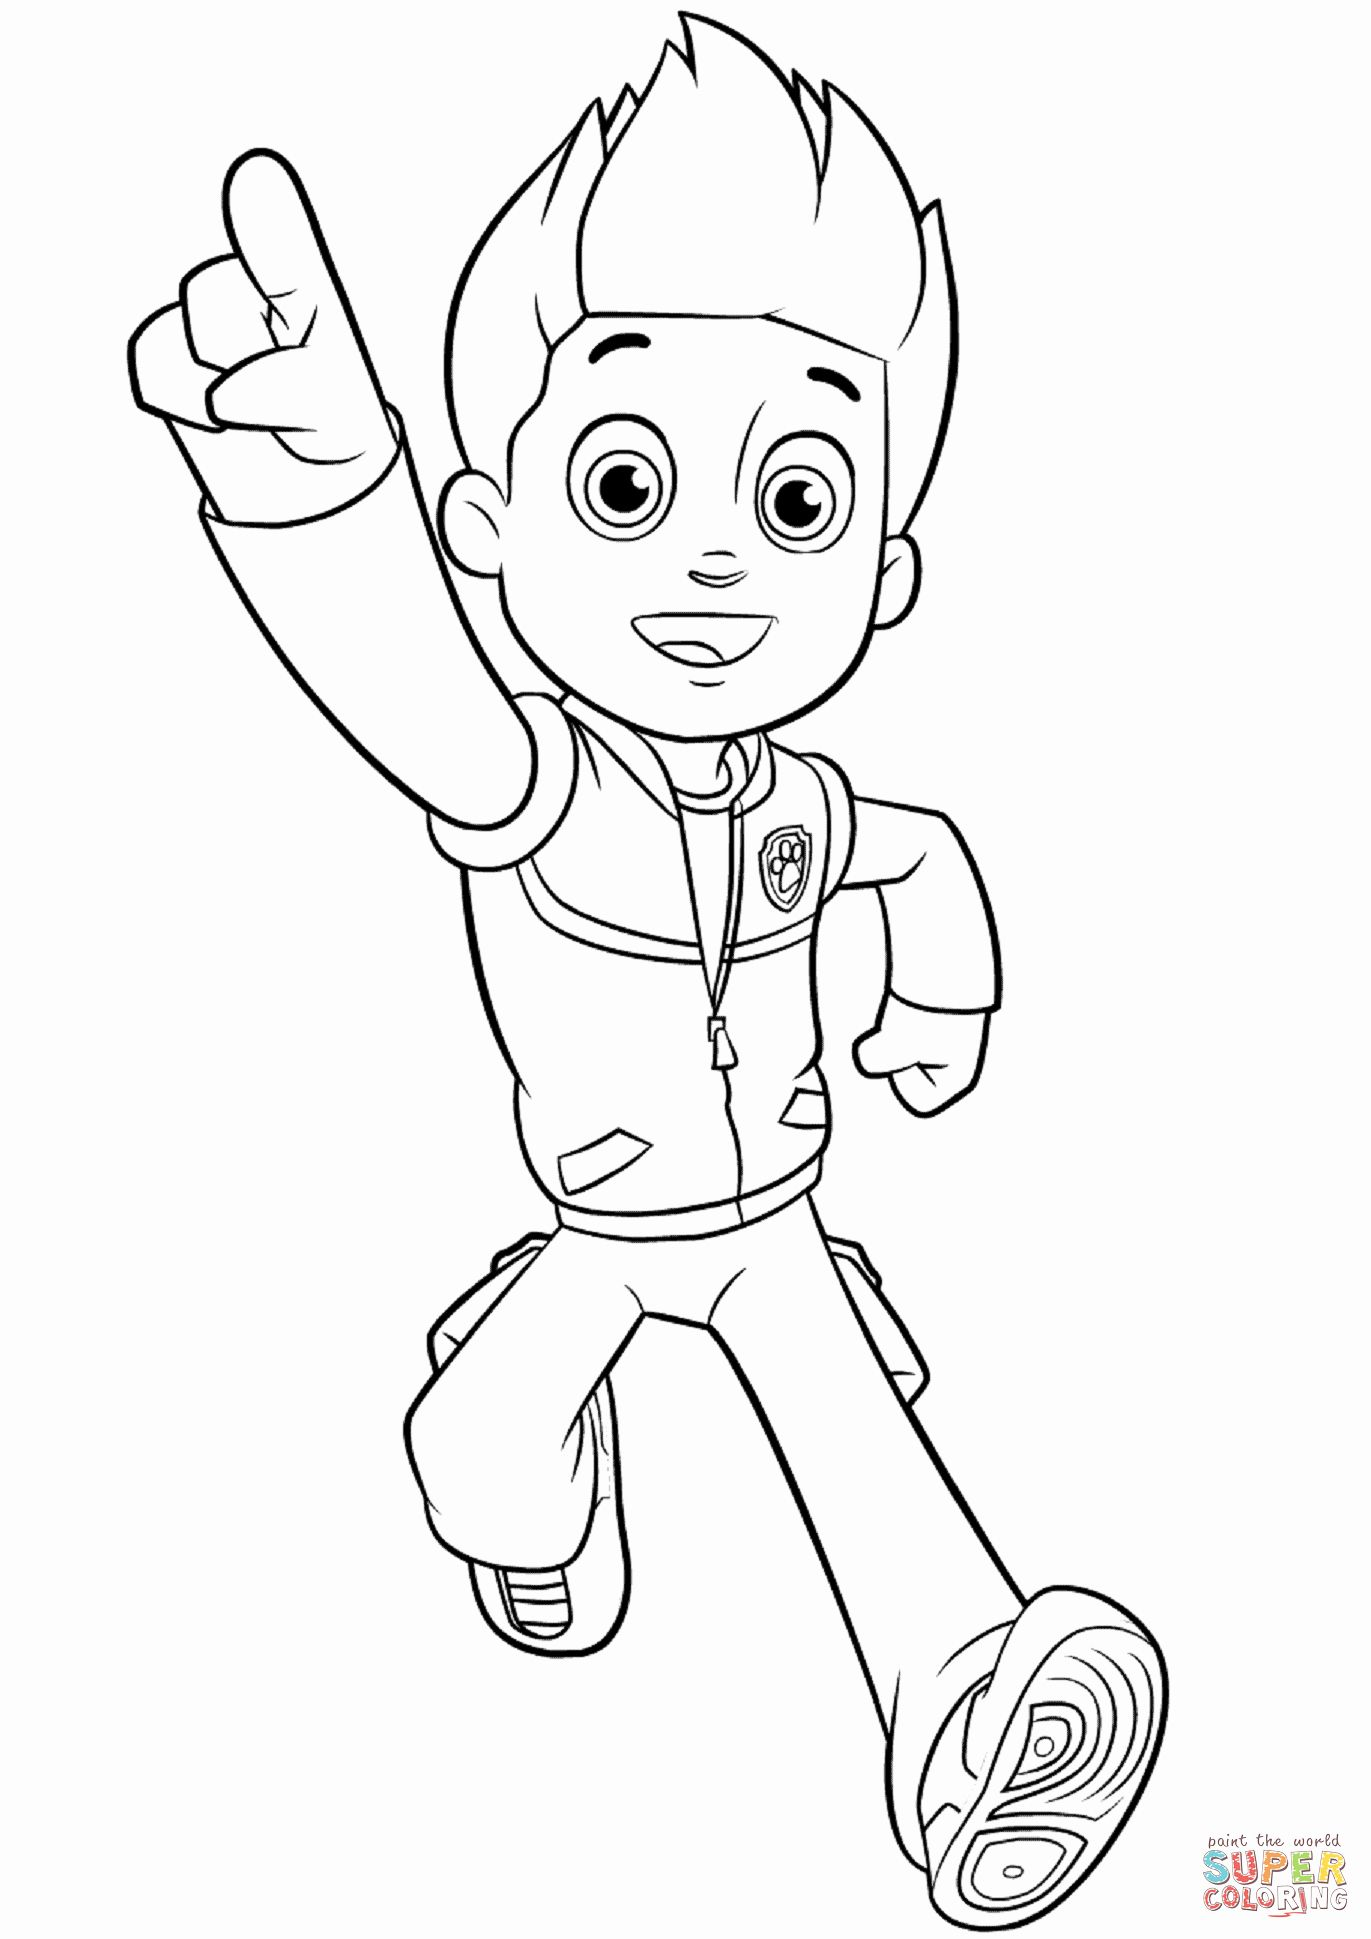 Paw Patrol Coloring Pages Printable Fresh Paw Patrol Colouring Pages And Activity Sheets In Paw Patrol Coloring Paw Patrol Coloring Pages Paw Patrol Printables